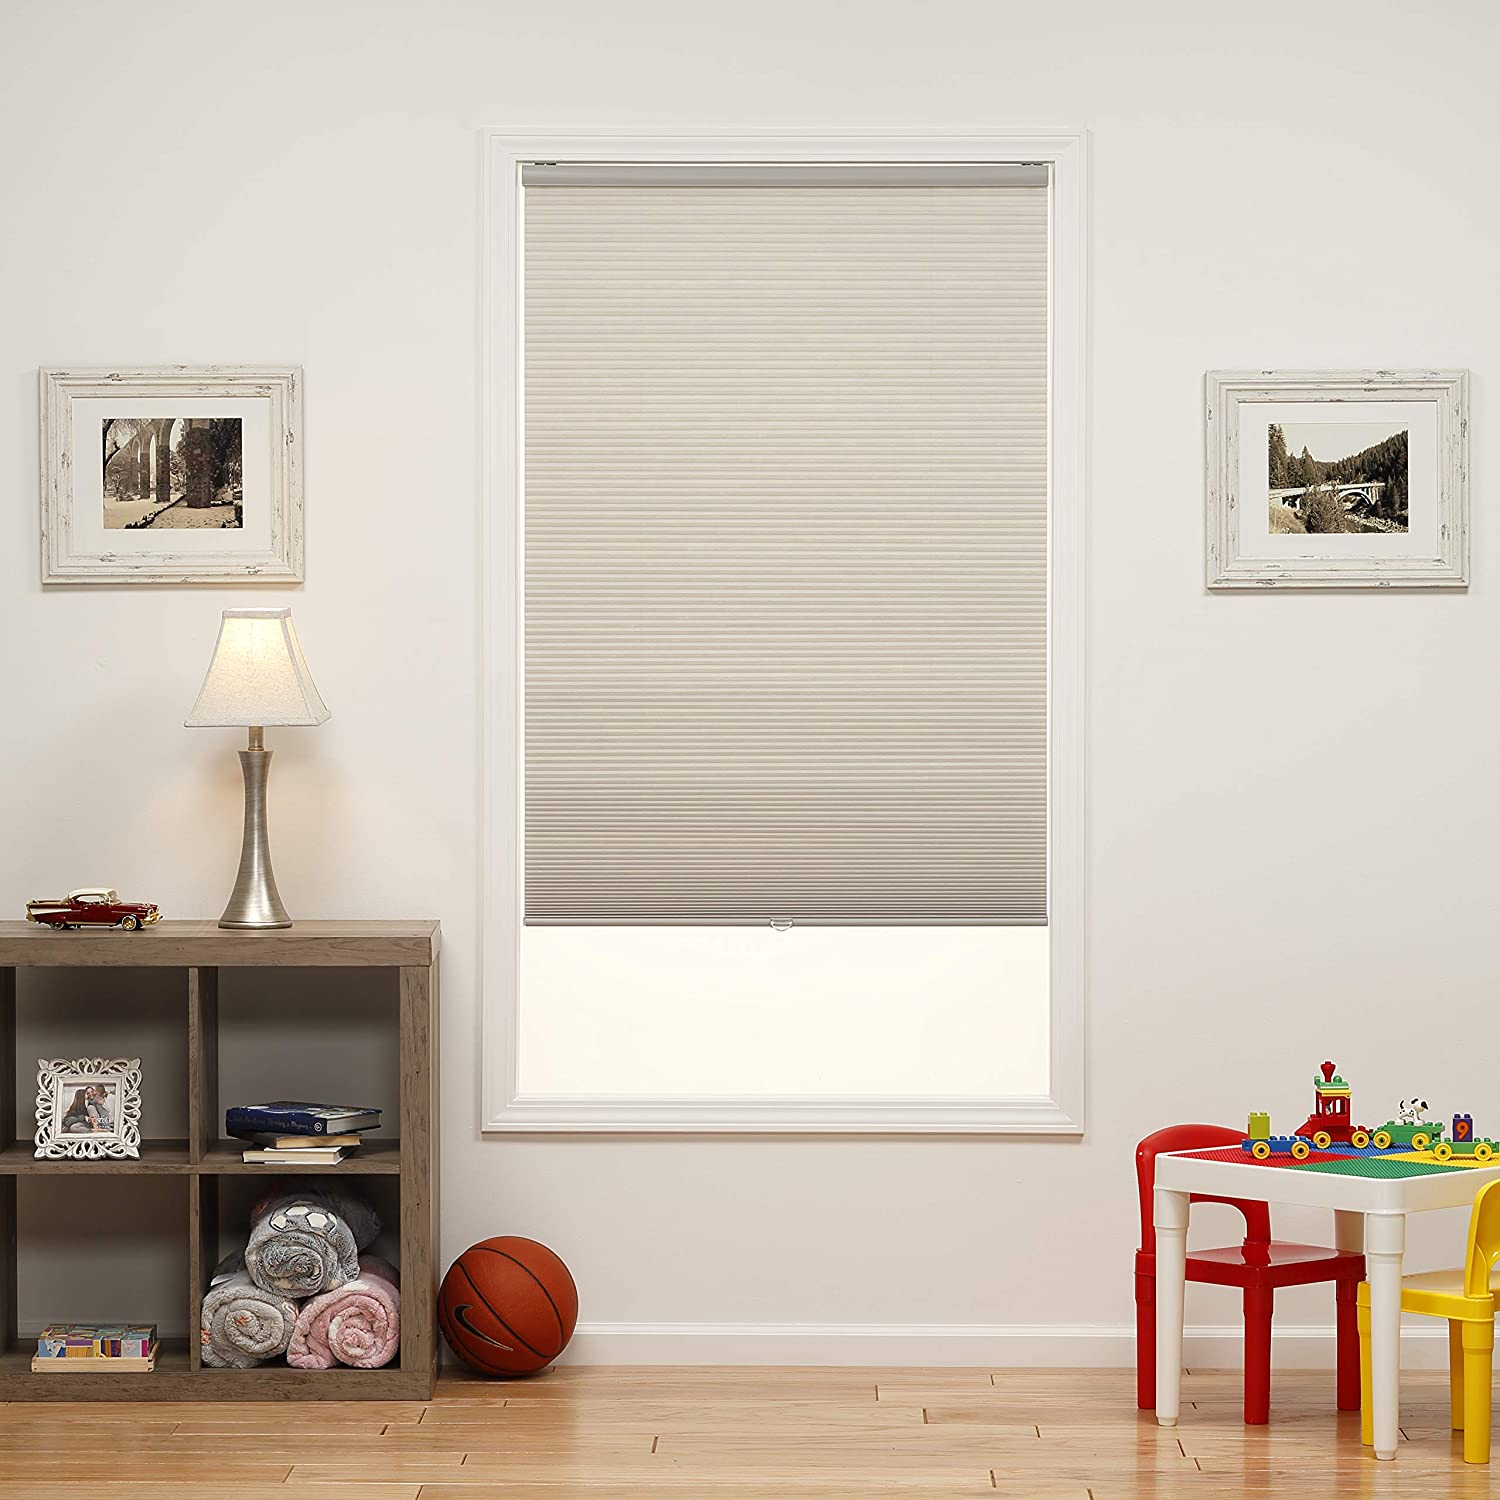 Gray Cloud DEZ Furnishings QCLG454640 Cordless Light Filtering Cellular Shade 45.5W x 64H Inches